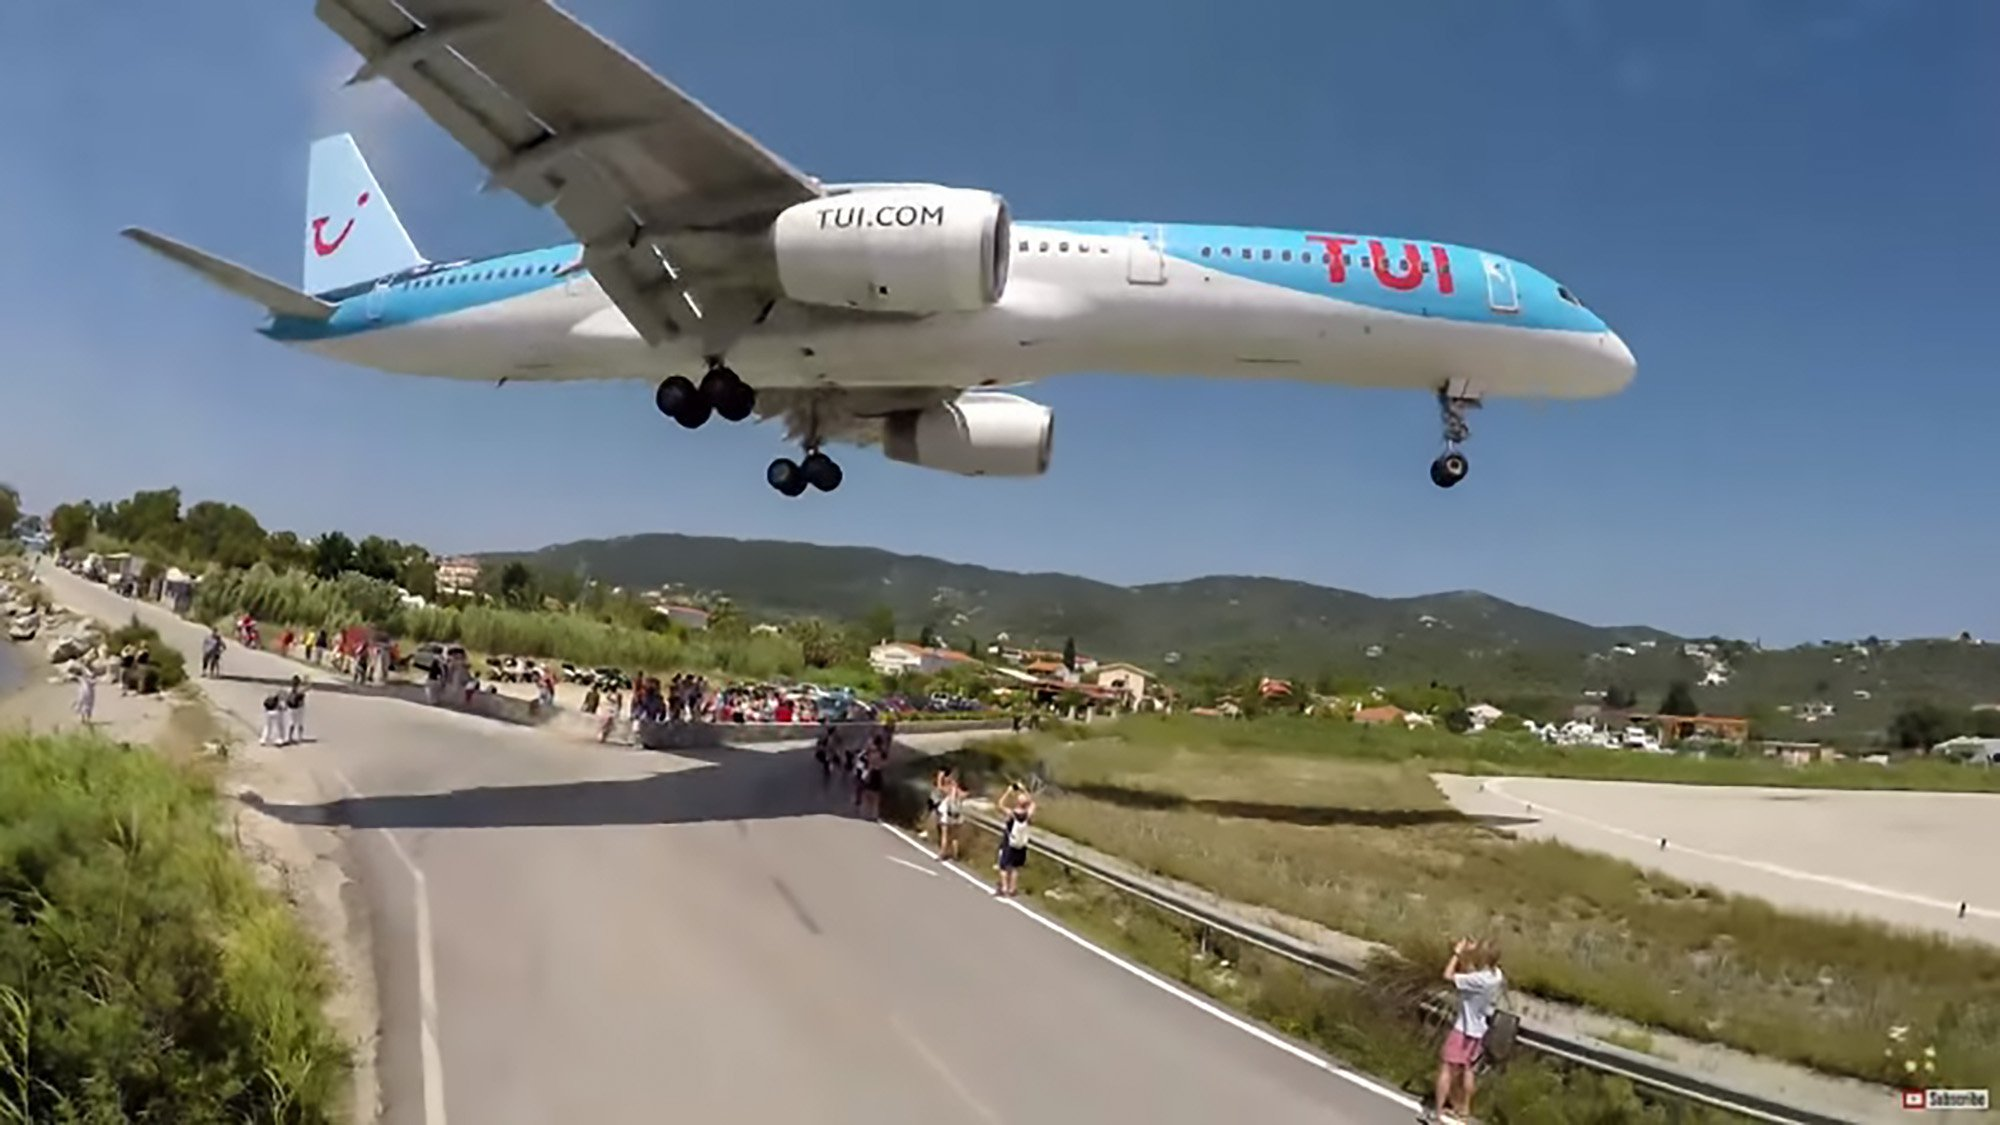 Pic Shows: File images of a Boeing 757 from TUI company captured during a backwards landing on Skiathos Airport; A British schoolboy has been hospitalised after he was blasted more than 10 metres through the air by the turbines of an Airbus 320 after visiting a controversial tourist attraction. Every year thousands of people visit the Greek island of Skiathos for its spectacular beaches and weather and by far the biggest attraction is a trip to the edge of the island's airport to see passenger planes landing just above their heads. This footage shot in 2017 went viral after showing how visitors were even hit by the jet turbines as planes touch down on the island in the Aegean sea. Spectators have known for years that they run the risk of being hit by sand and even stones whipped up by the plane's jet engines, but now a 12-year-old British boy who was watching the site with his dad has been blasted through the air. Luckily he landed on the sand and survived although experts have warned it could just as easily have had deadly consequences. The incident happened early yesterday (Wednesday) afternoon when the father and son, as well as dozens of other tourists, were standing by the fence in order to see a TUI Airbus 320 that was departing for London. The force of the blast from the plane's turbines then hit the young boy and sent him flying through the air. He was taken by ambulance to the Skiathos Health Centre where a full checkup was carried out. Medics have confirmed that the boy was given emergency first aid before being transferred to the Achilopouleio Hospital of Volos for further treatment. According to the medical stuff, the boy is expected to survive.